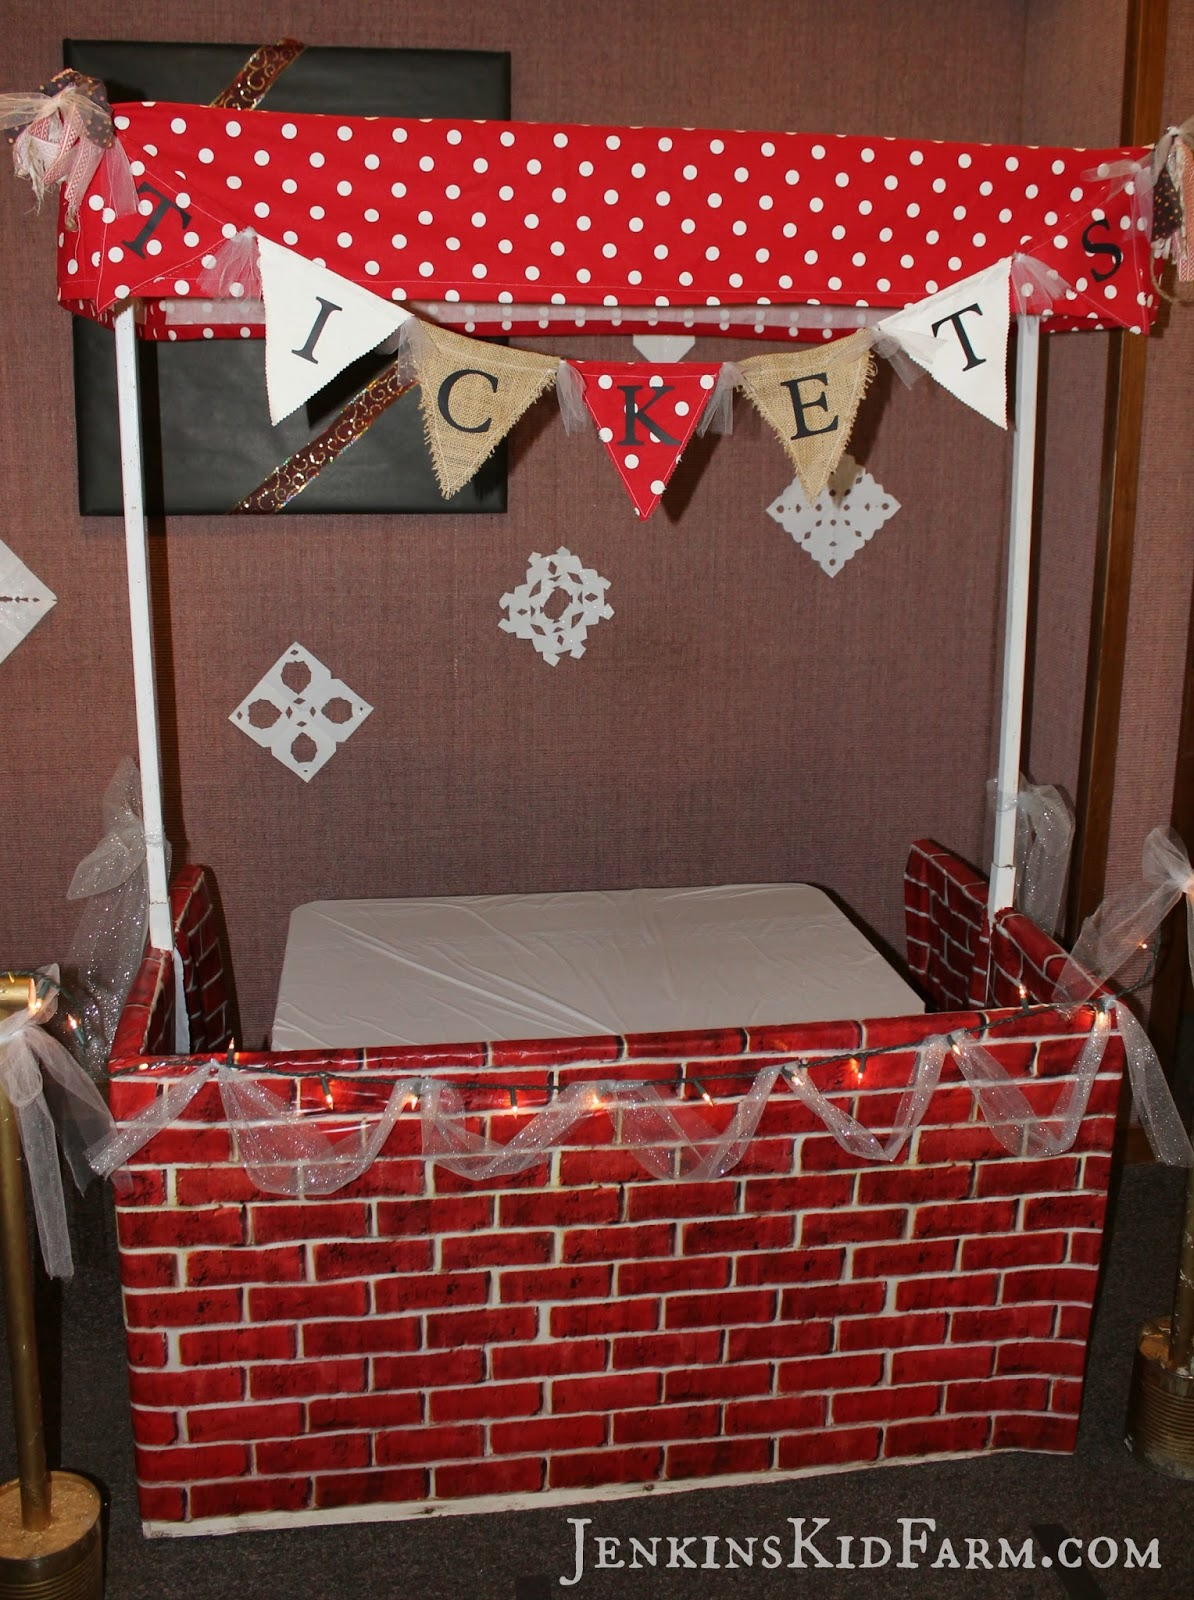 Polar Express Party Ideas For Christmas Part - 37: Polar Express Ward Christmas Party